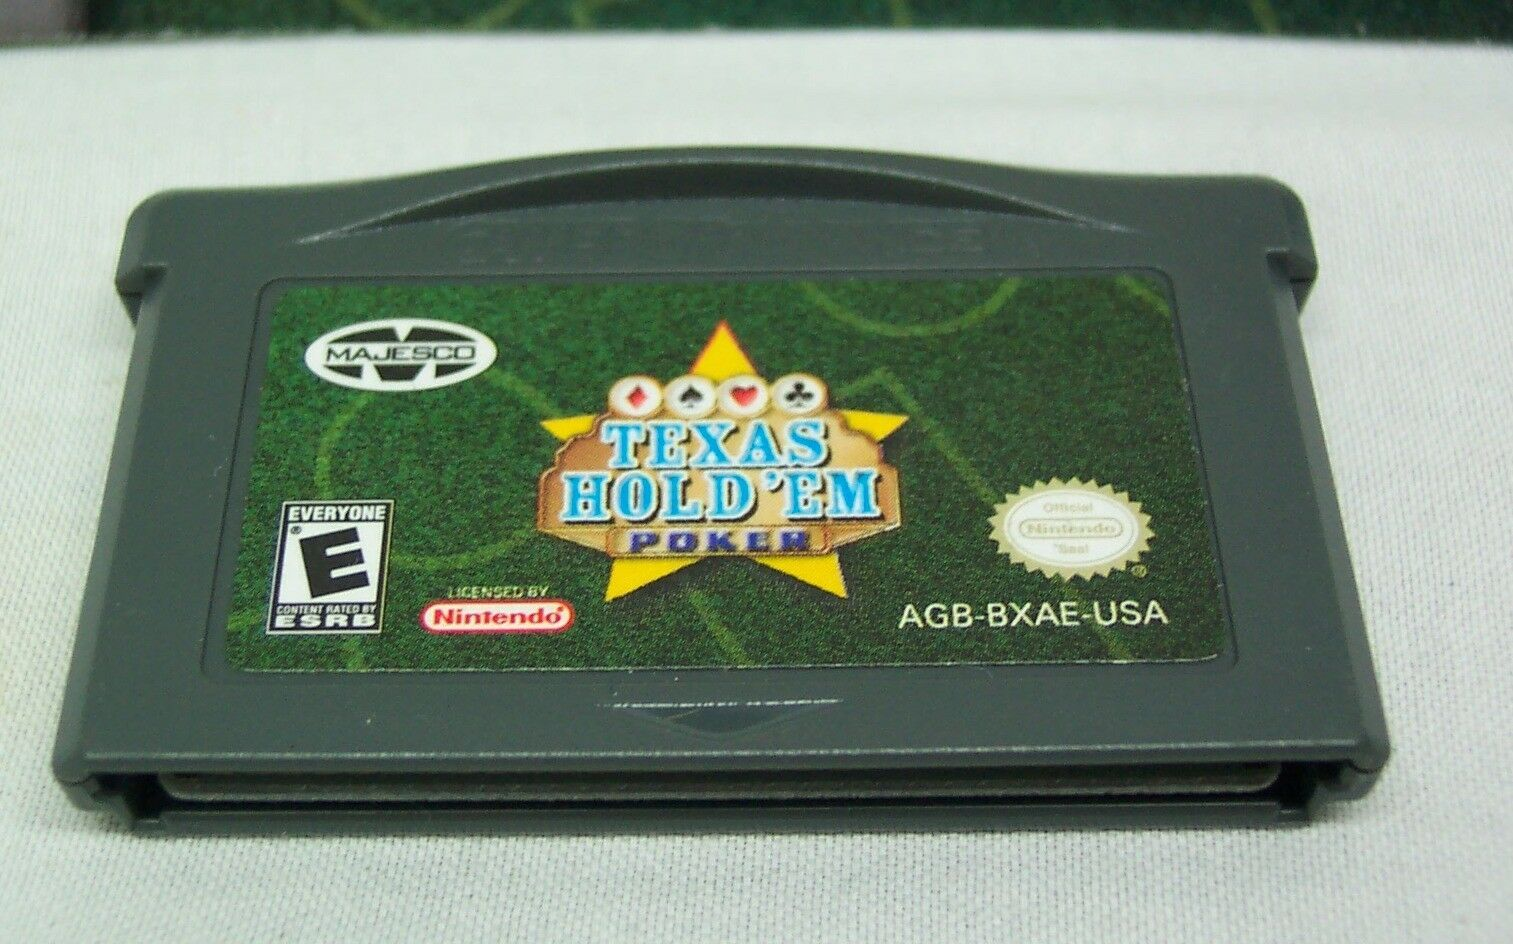 Texas Hold 'Em Poker NINTENDO GAME BOY ADVANCE GAME 2004 with MANUAL